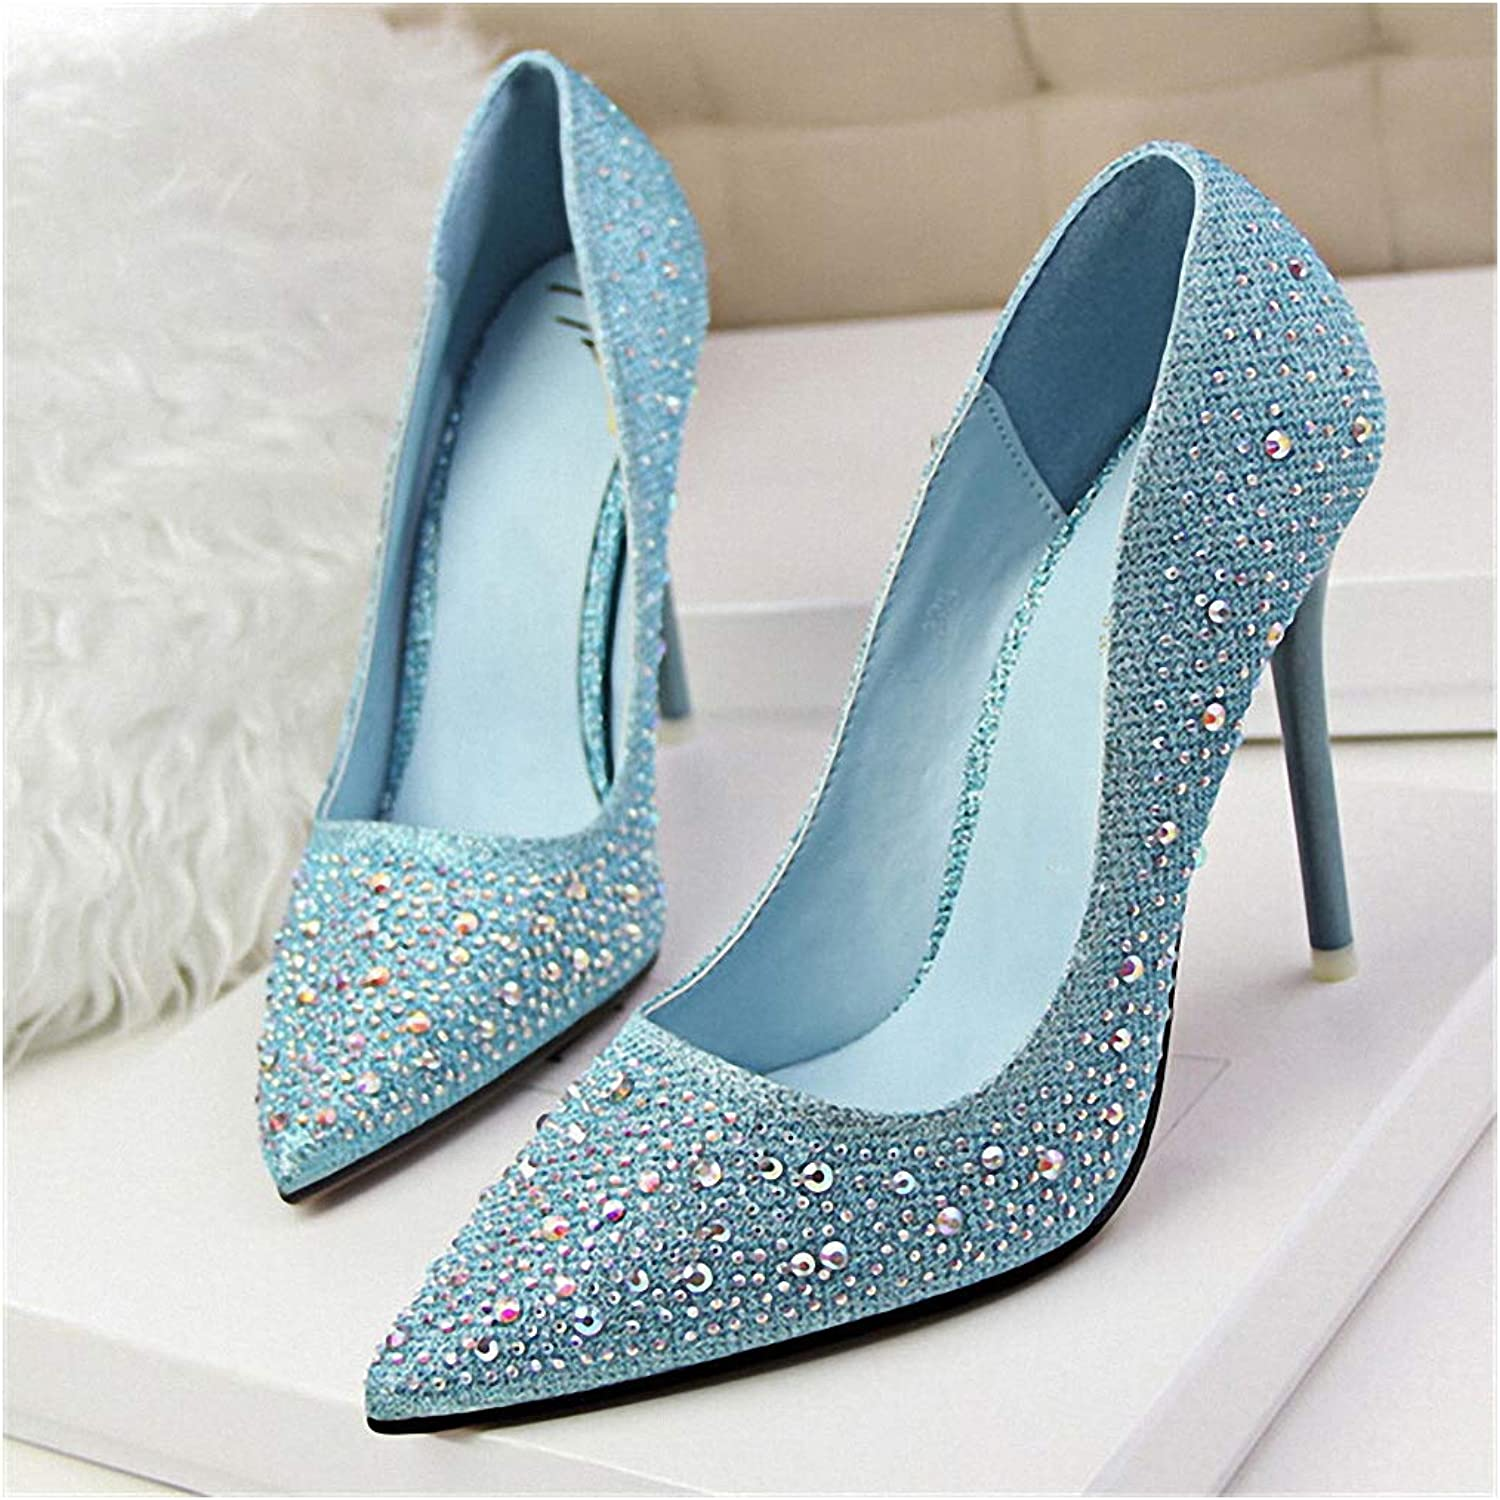 Tebapi Womens High-Heeled Pumps shoes Fashion New Women Pumps Classic Sequined Shallow Women High Heels Sexy Pointed 10cm Wedding shoes Party Women shoes